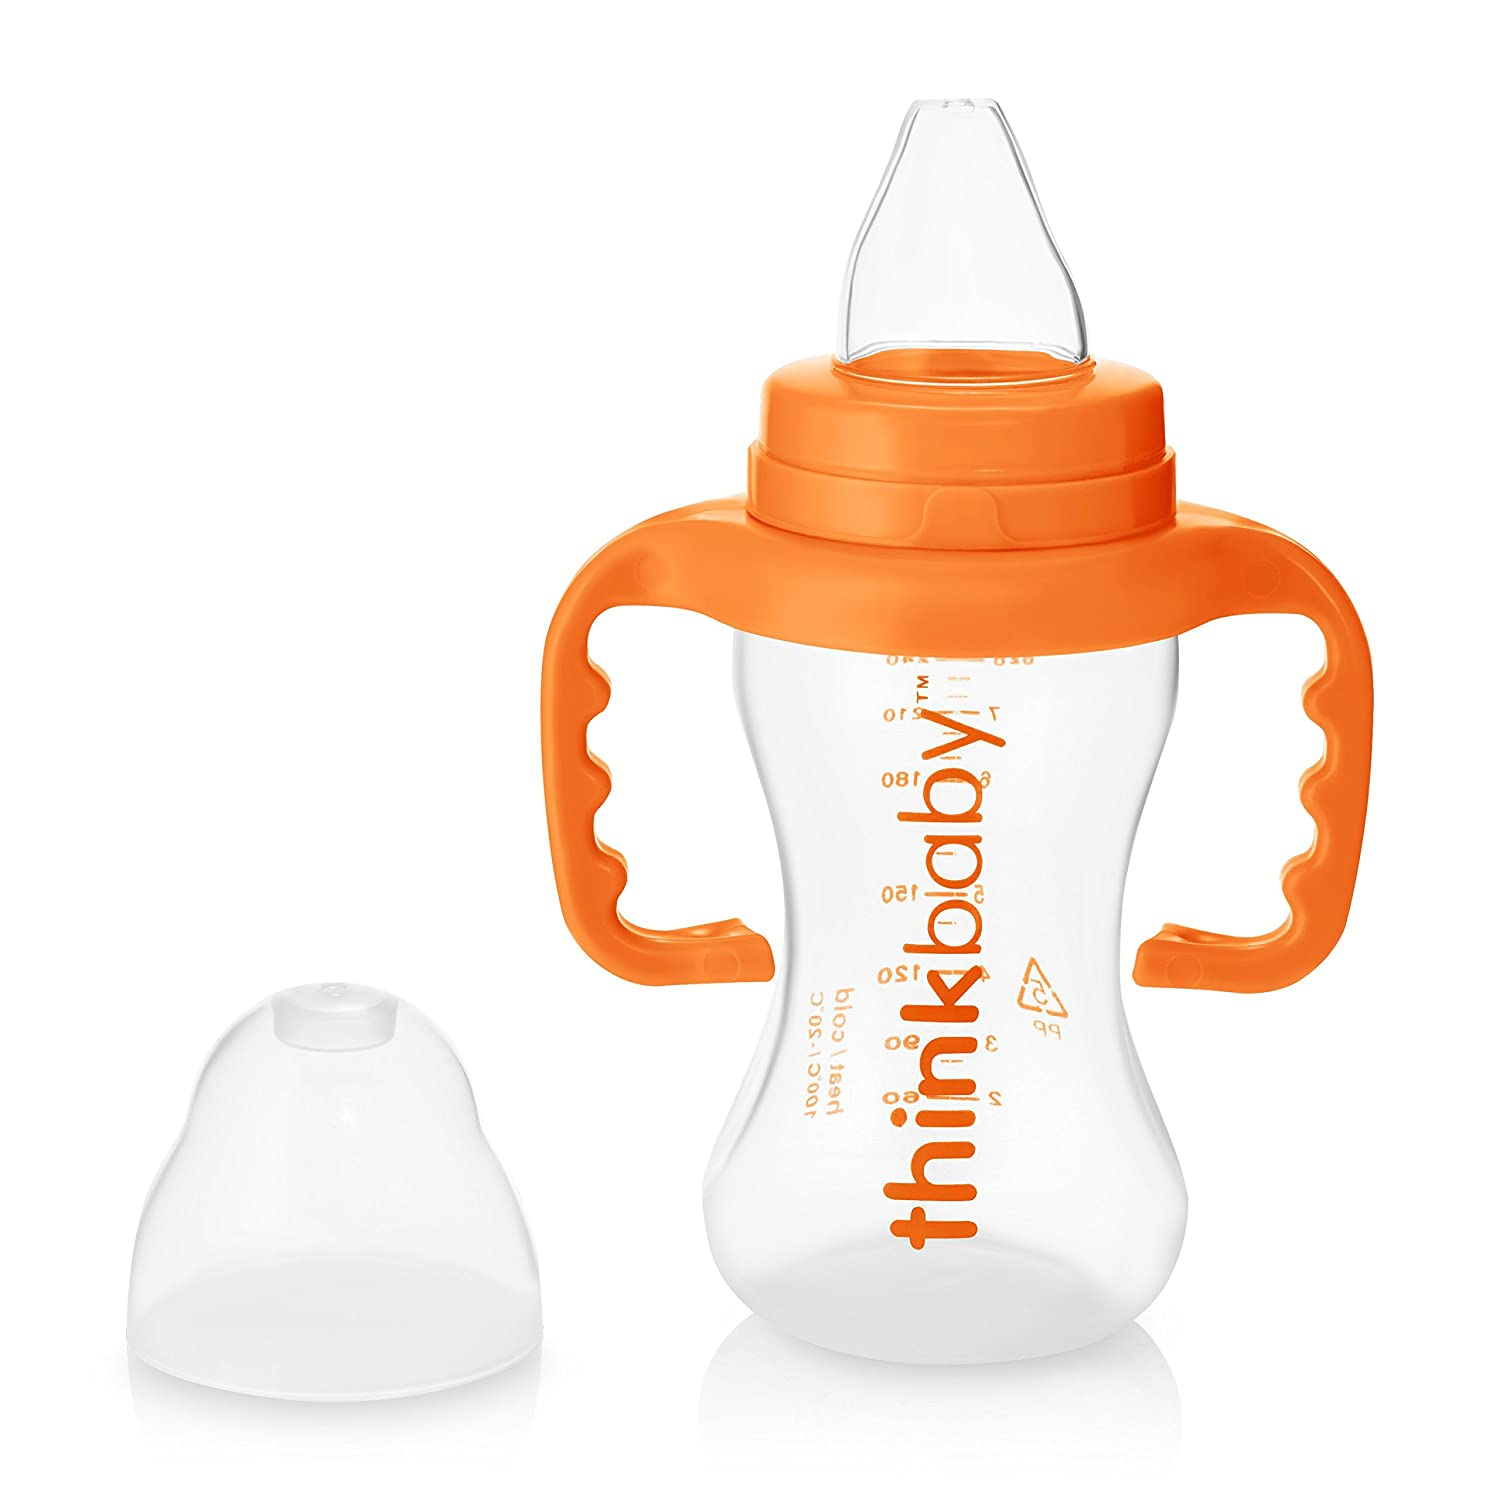 Thinkbaby Sippy Cup, Orange/Clear PP Sippy